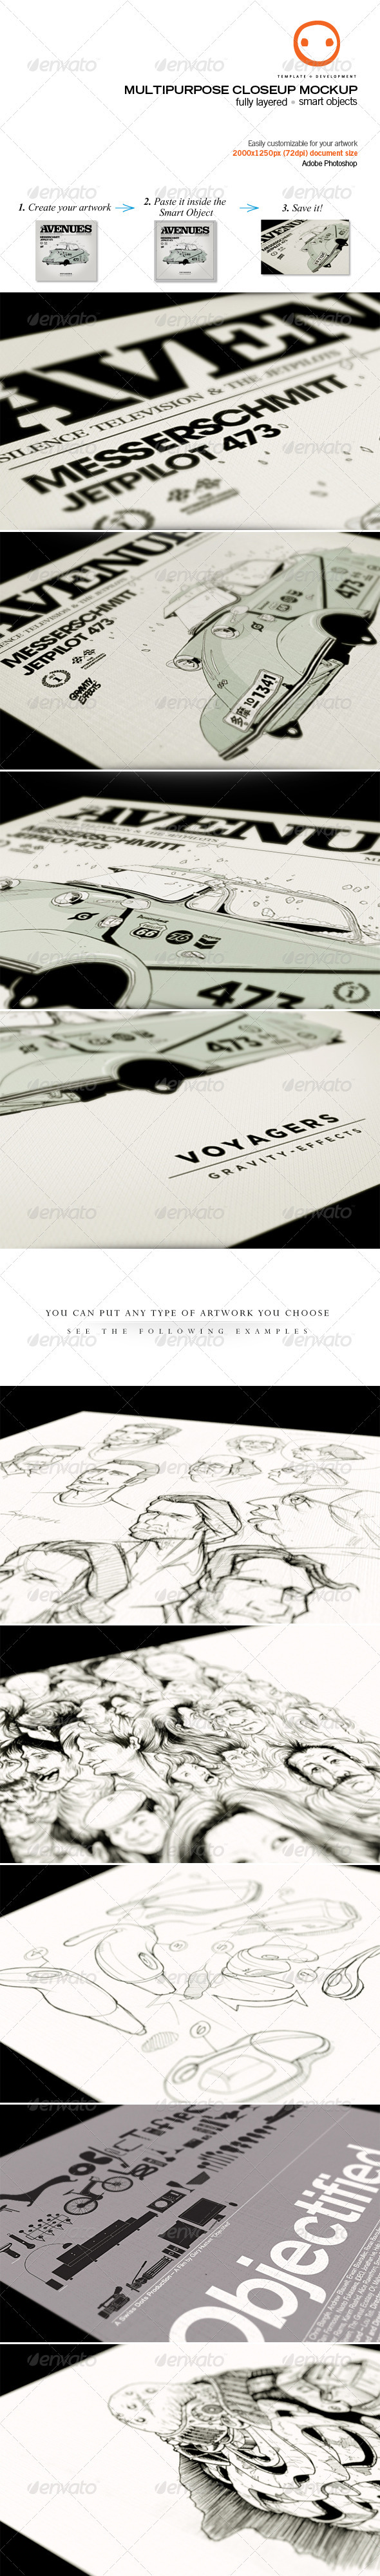 Multipurpose Closeup Mockup